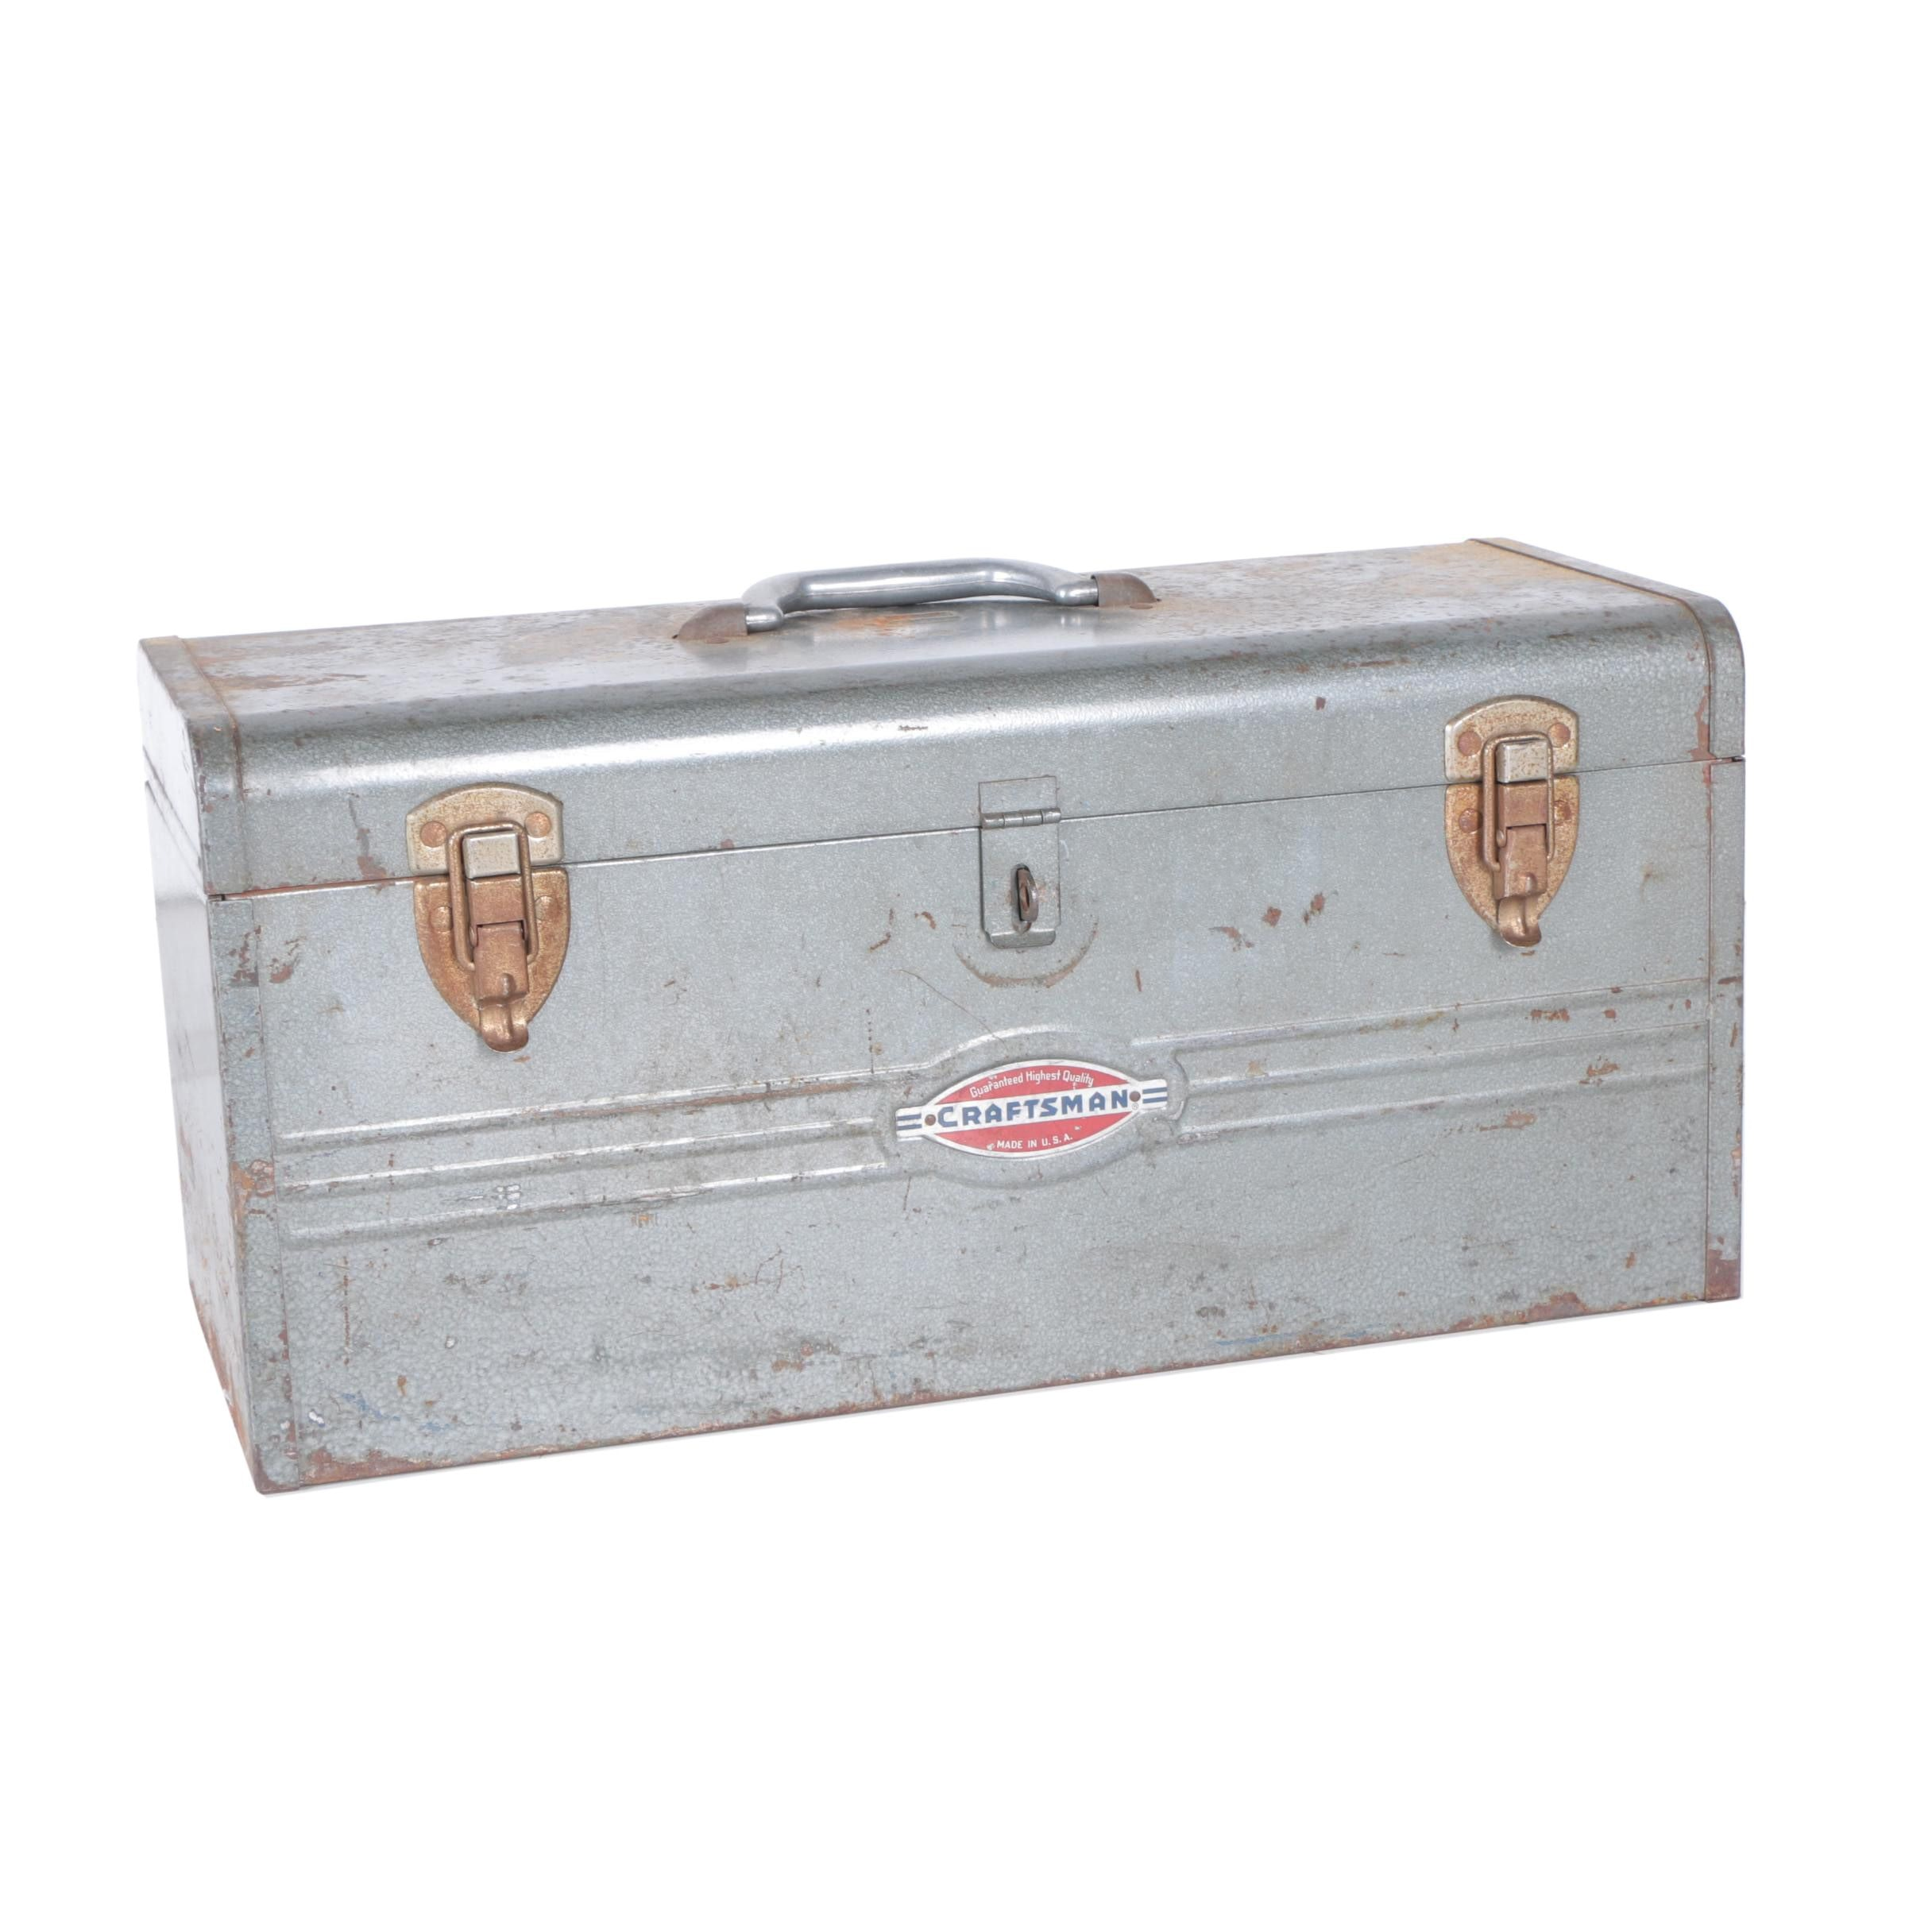 Craftsman Metal Toolbox with Removable Tray and Tools